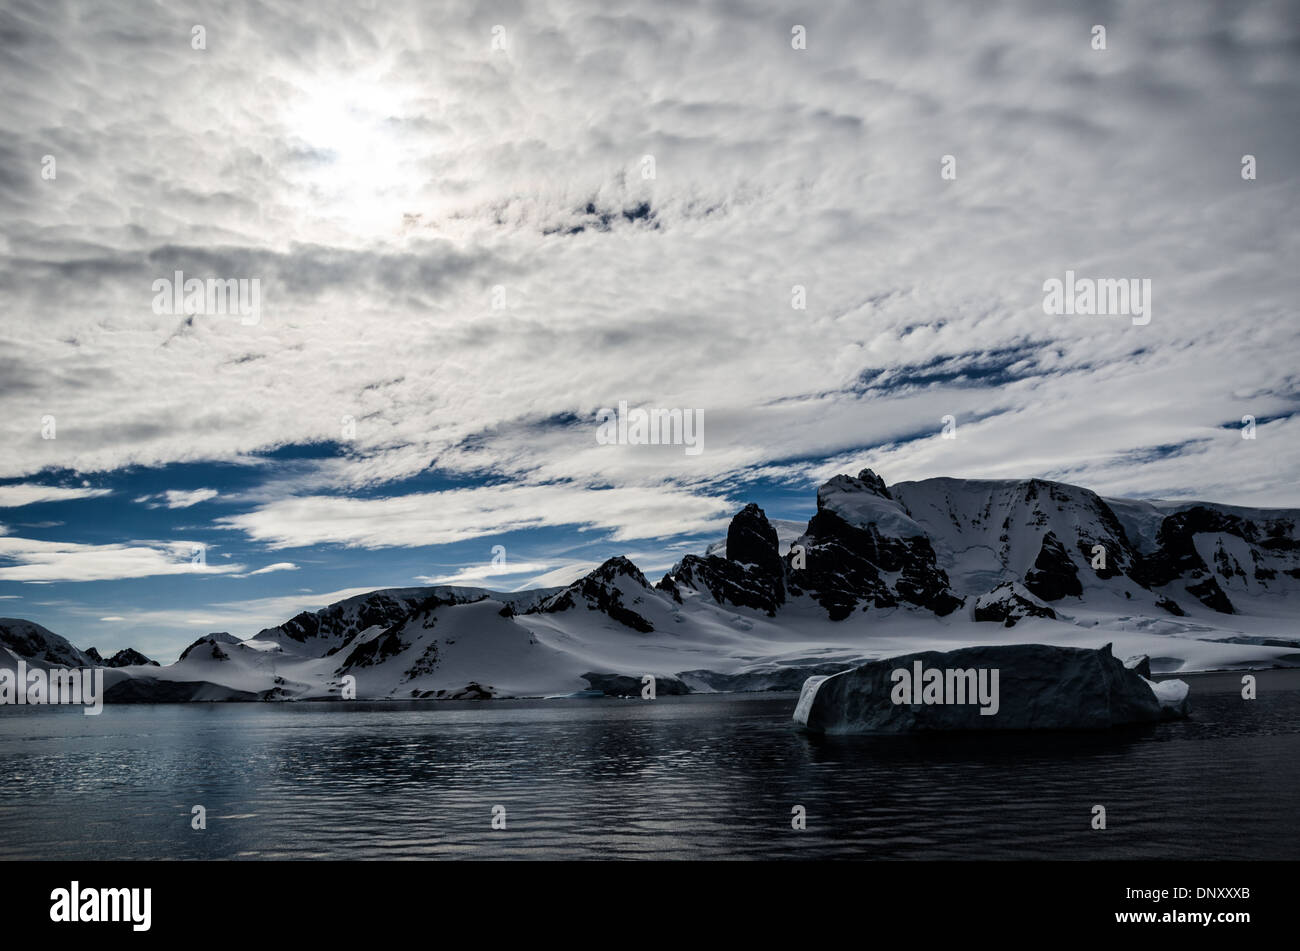 ANTARCTICA - A landscape shot of some of the rugged mountains of the Antarctic Peninsula of Cuverville Island. Stock Photo